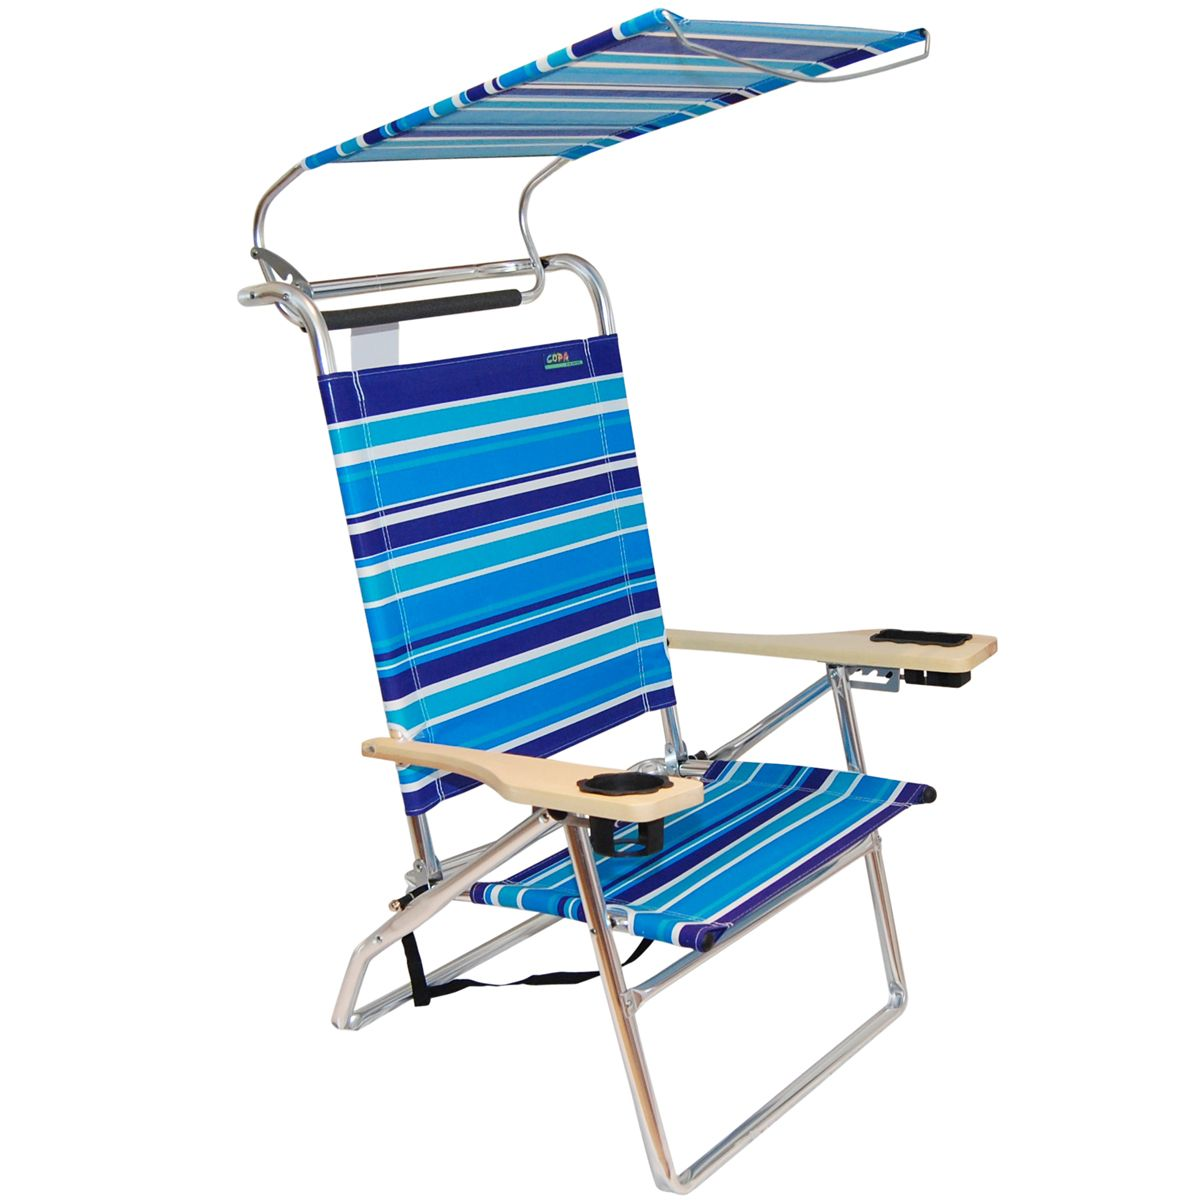 Beach chair with canopy - Light Weight Outdoors Portable Stainless Steel Beach Chair